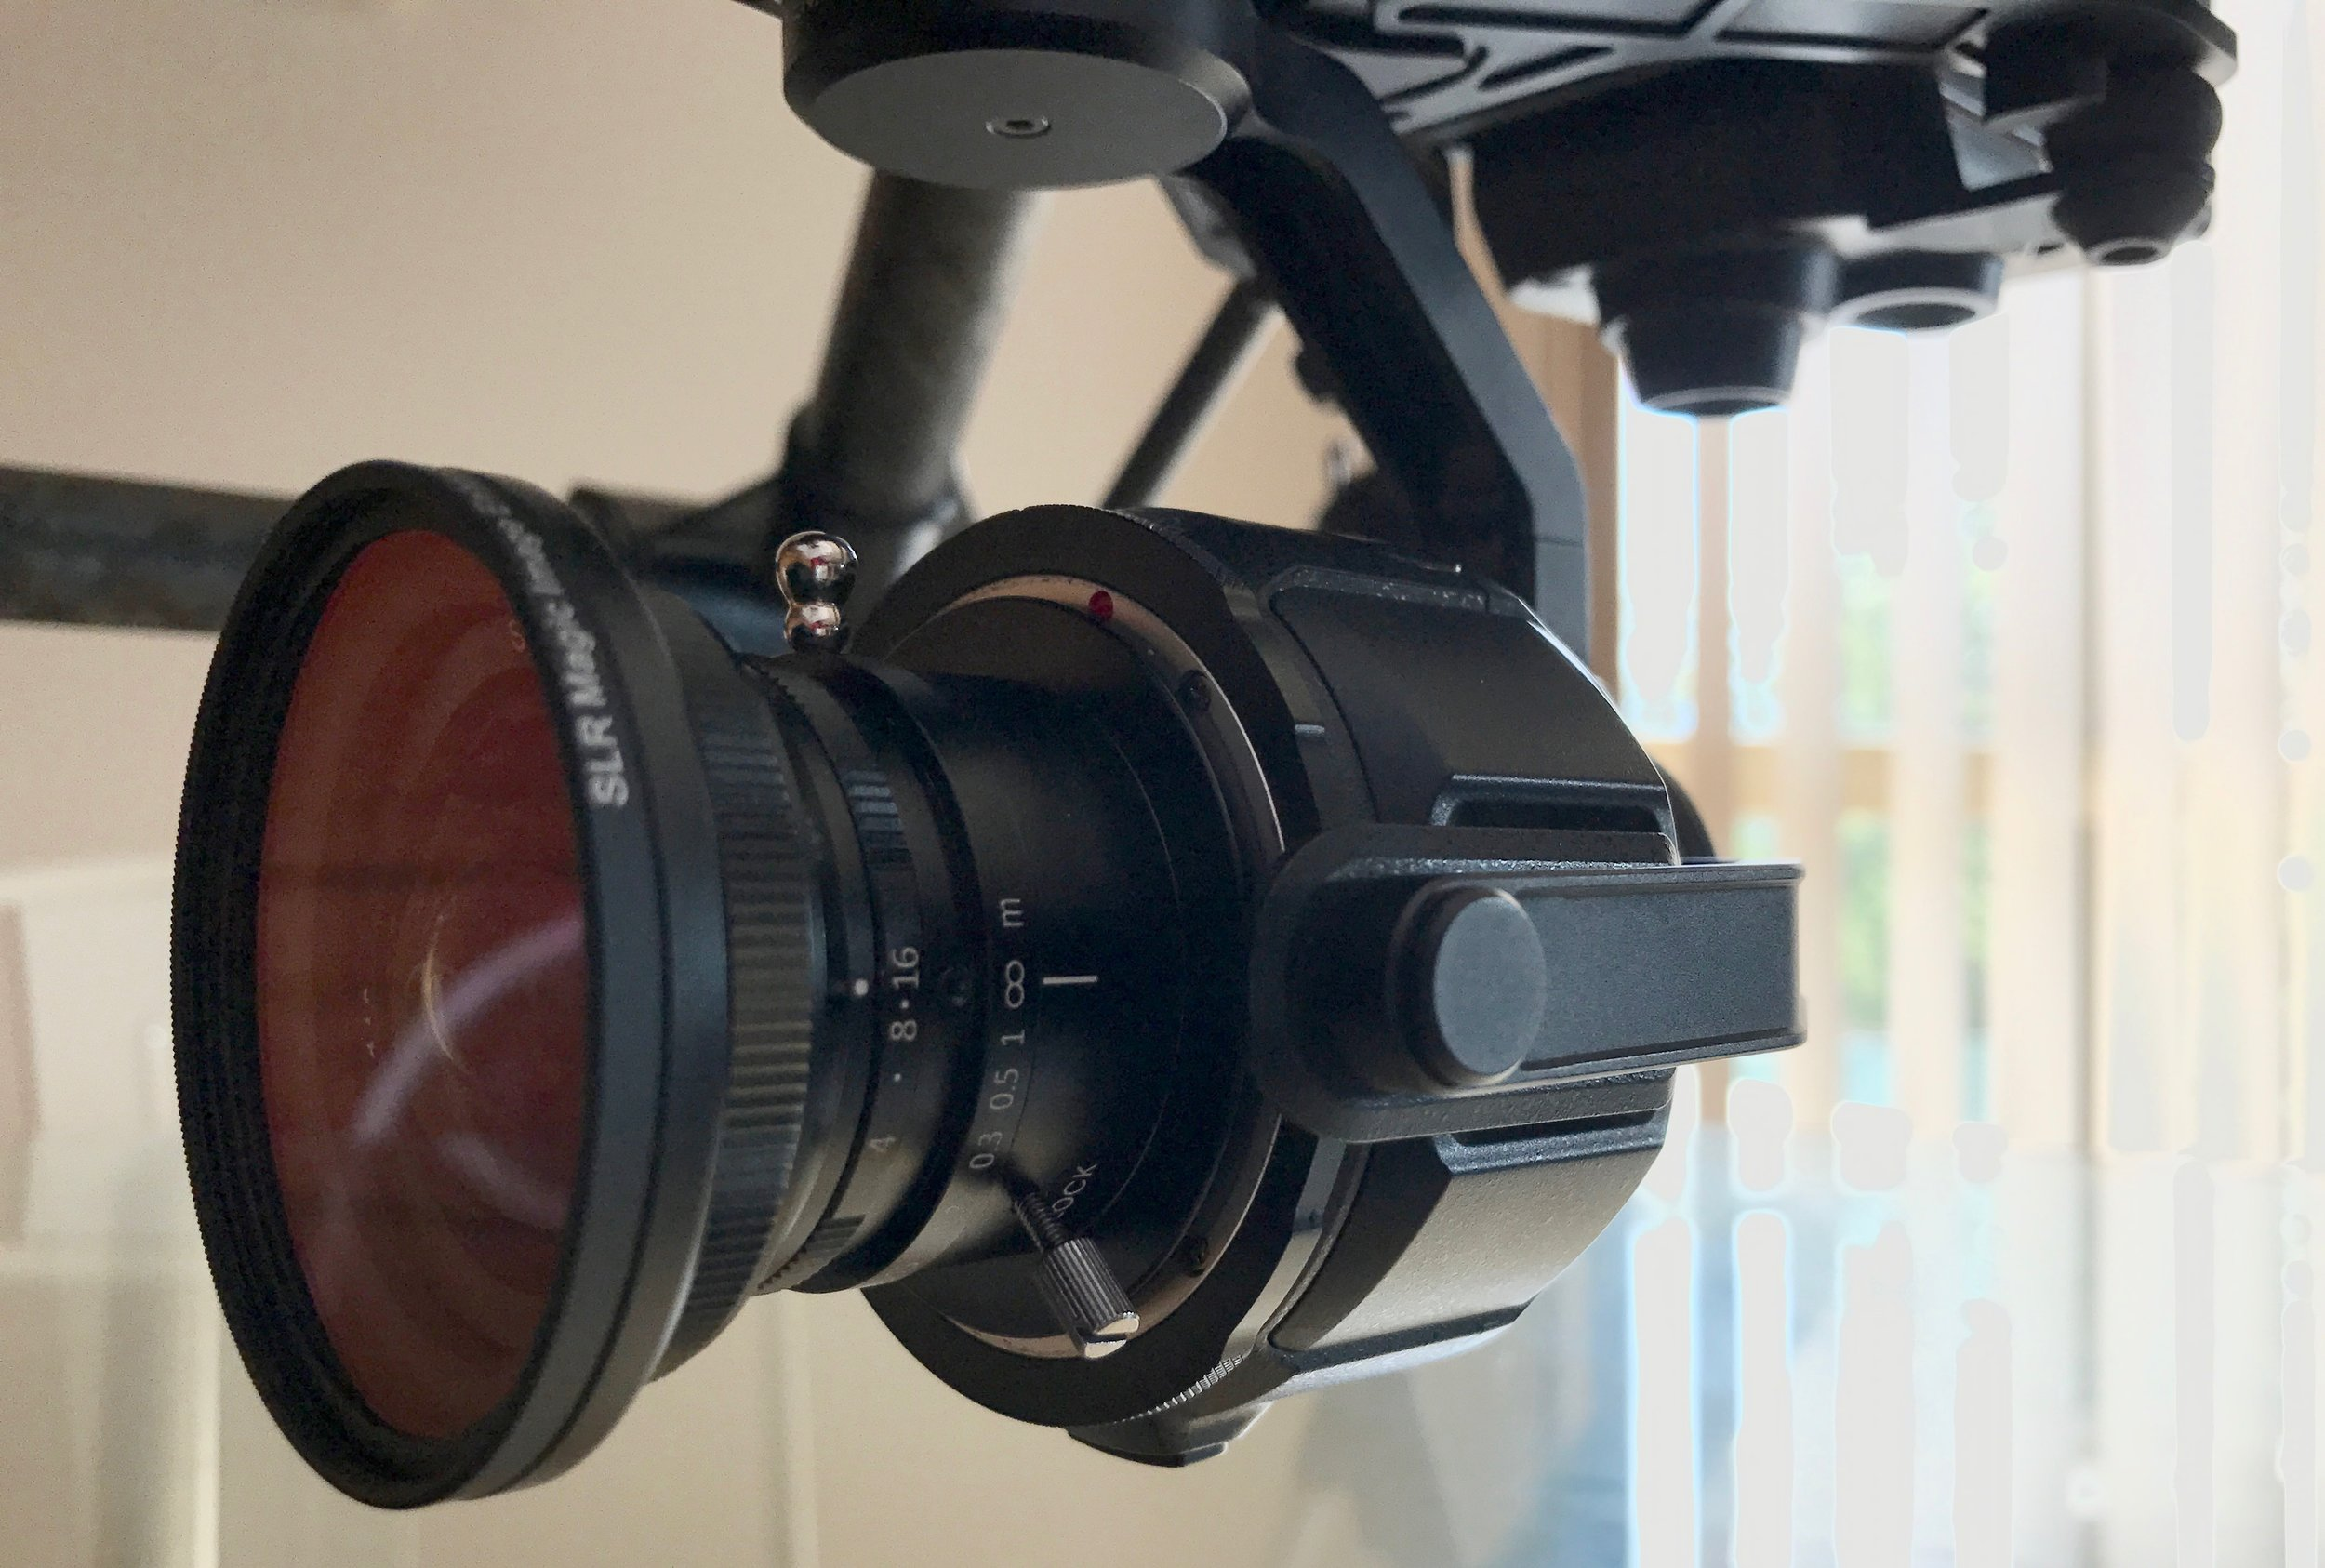 SLR Magic 8mm Lens attached to the DJI X5 Camera with the 52mm Image Enhancer Filter